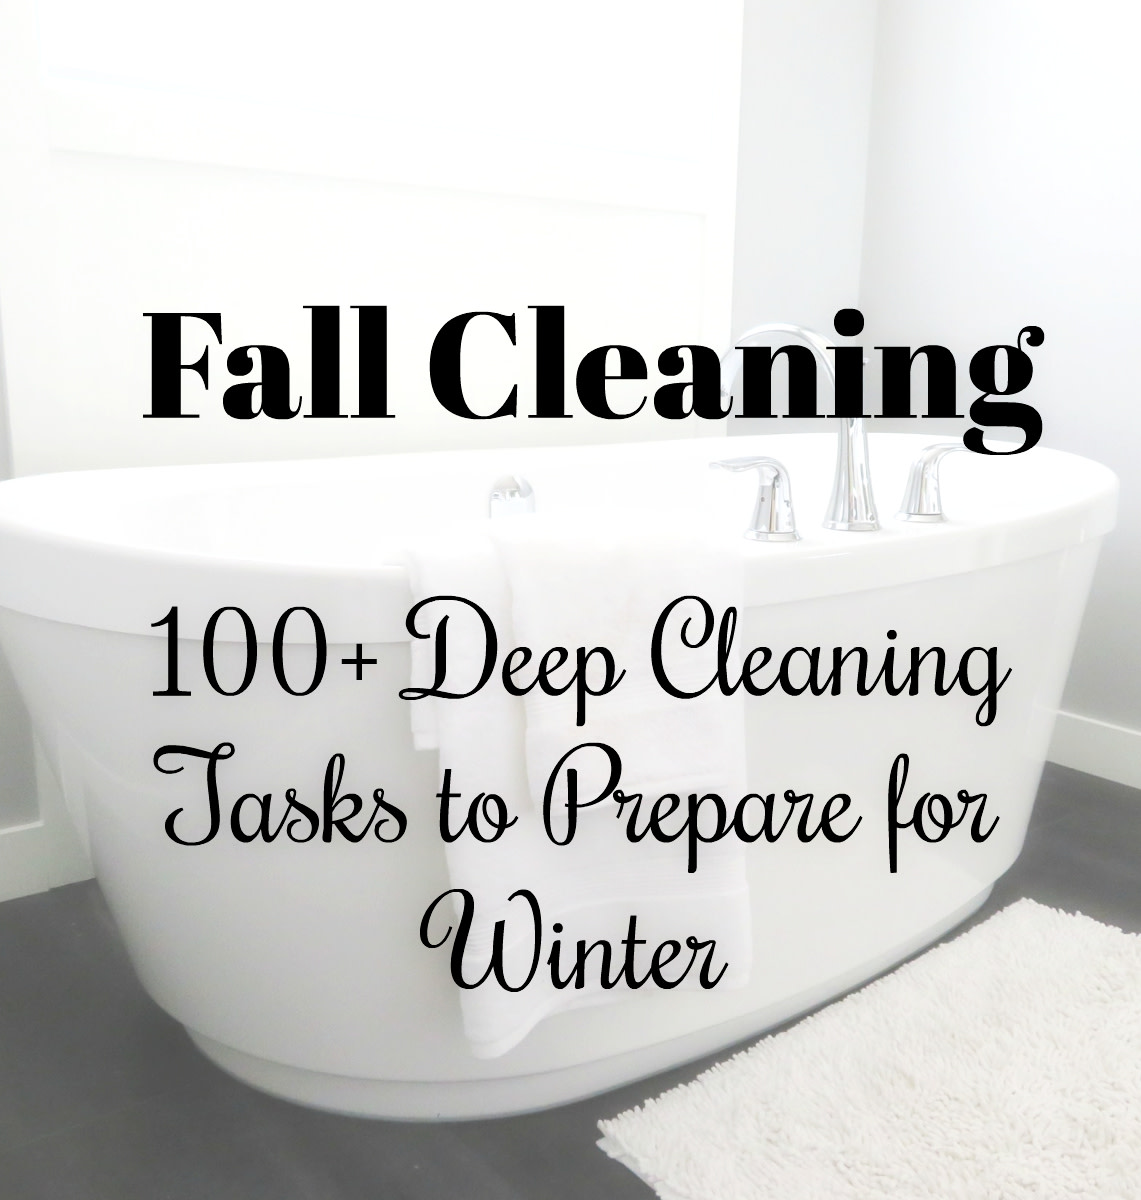 Fall Cleaning - 100+ Tasks to Prepare for Winter